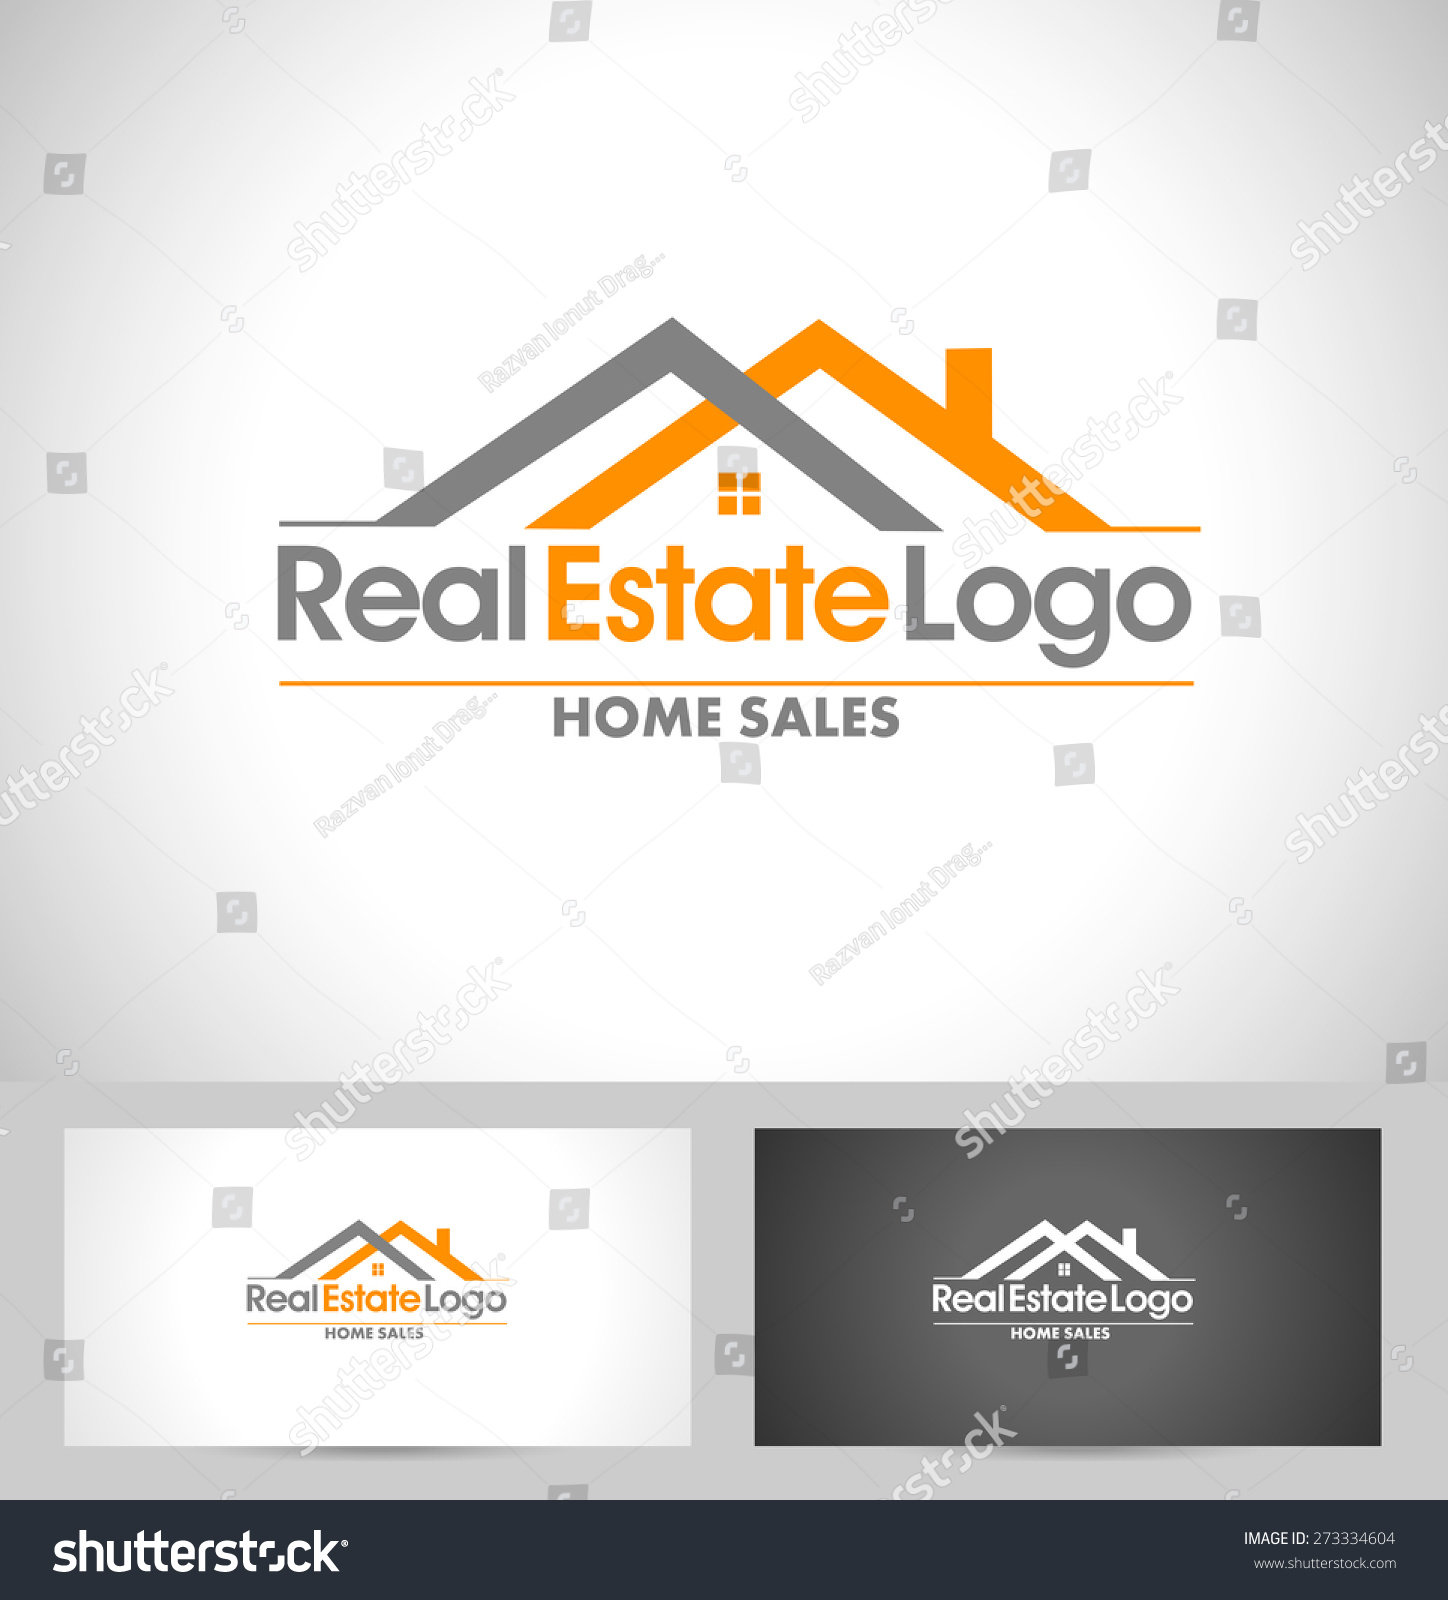 stock-vector-real-estate-logo-design-creative-abstract-real-estate-icon-logo-and-business-card-template-273334604.jpg